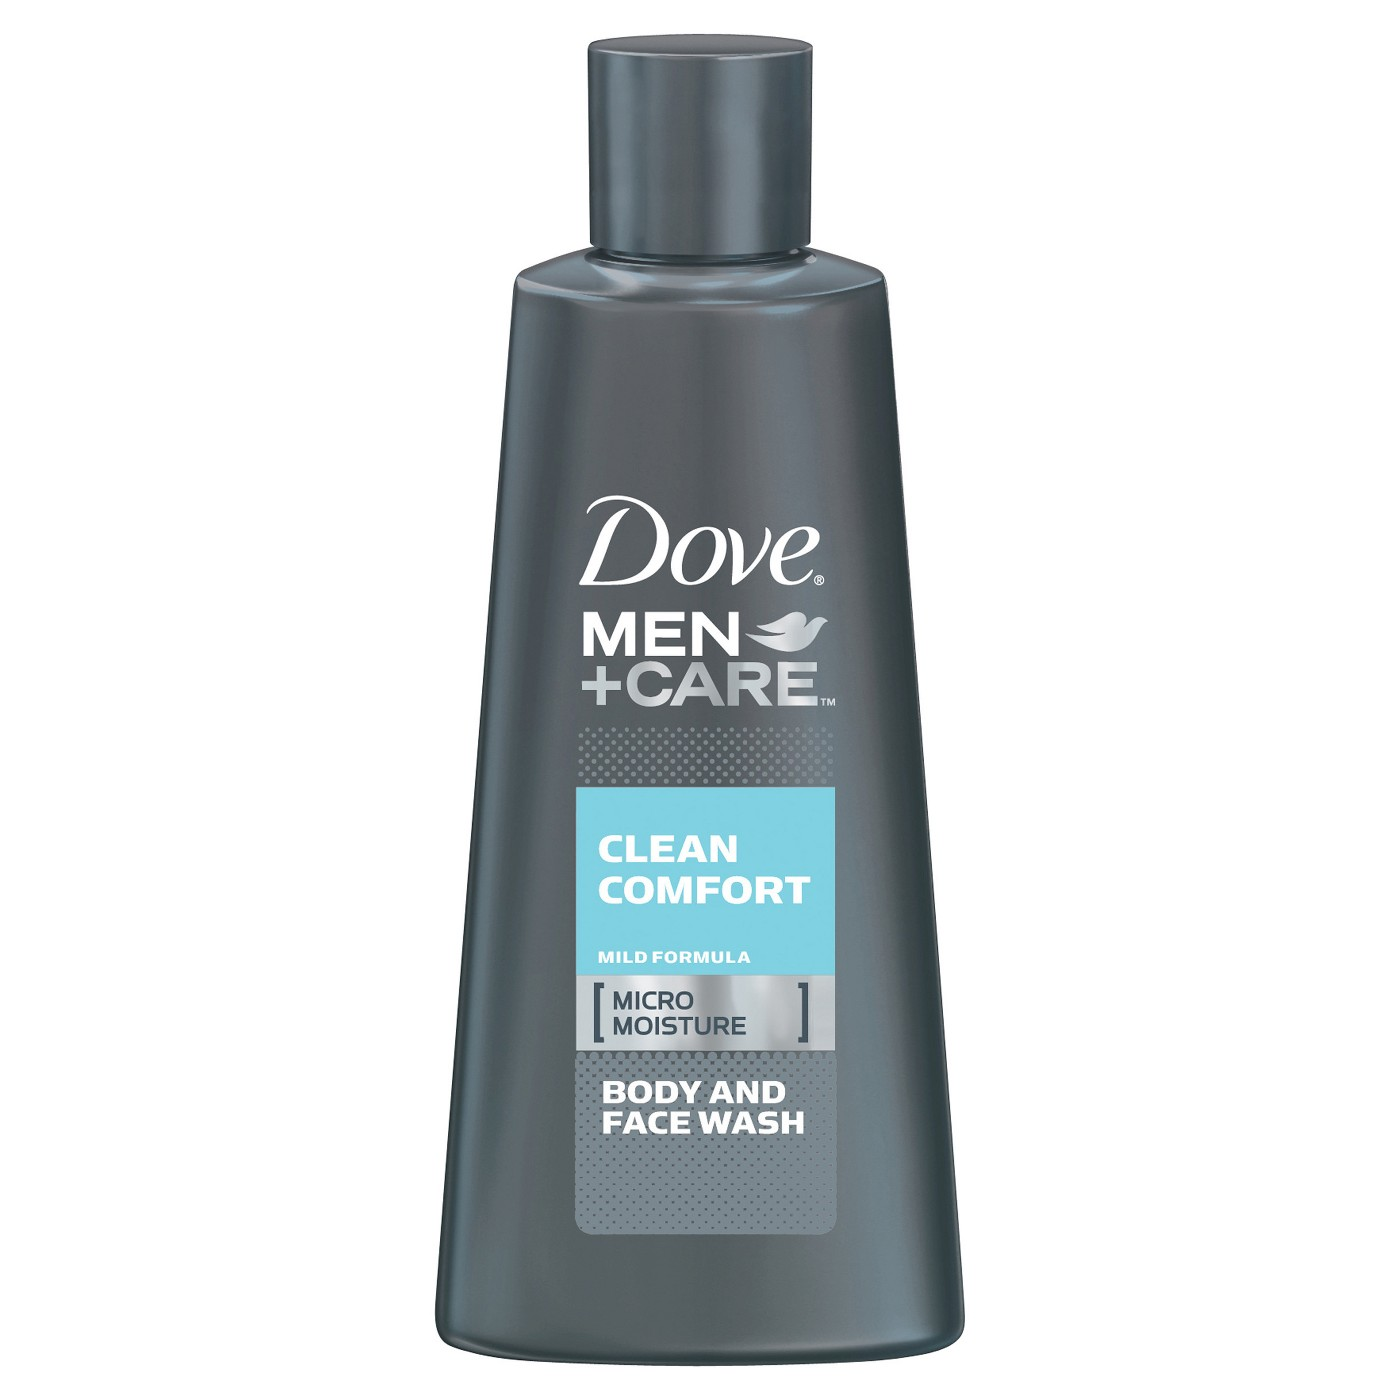 Dove Men+Care Clean Comfort Body & Face Wash - Roy:I like any type of body wash like Dove.I hate using bar soaps...$1.49